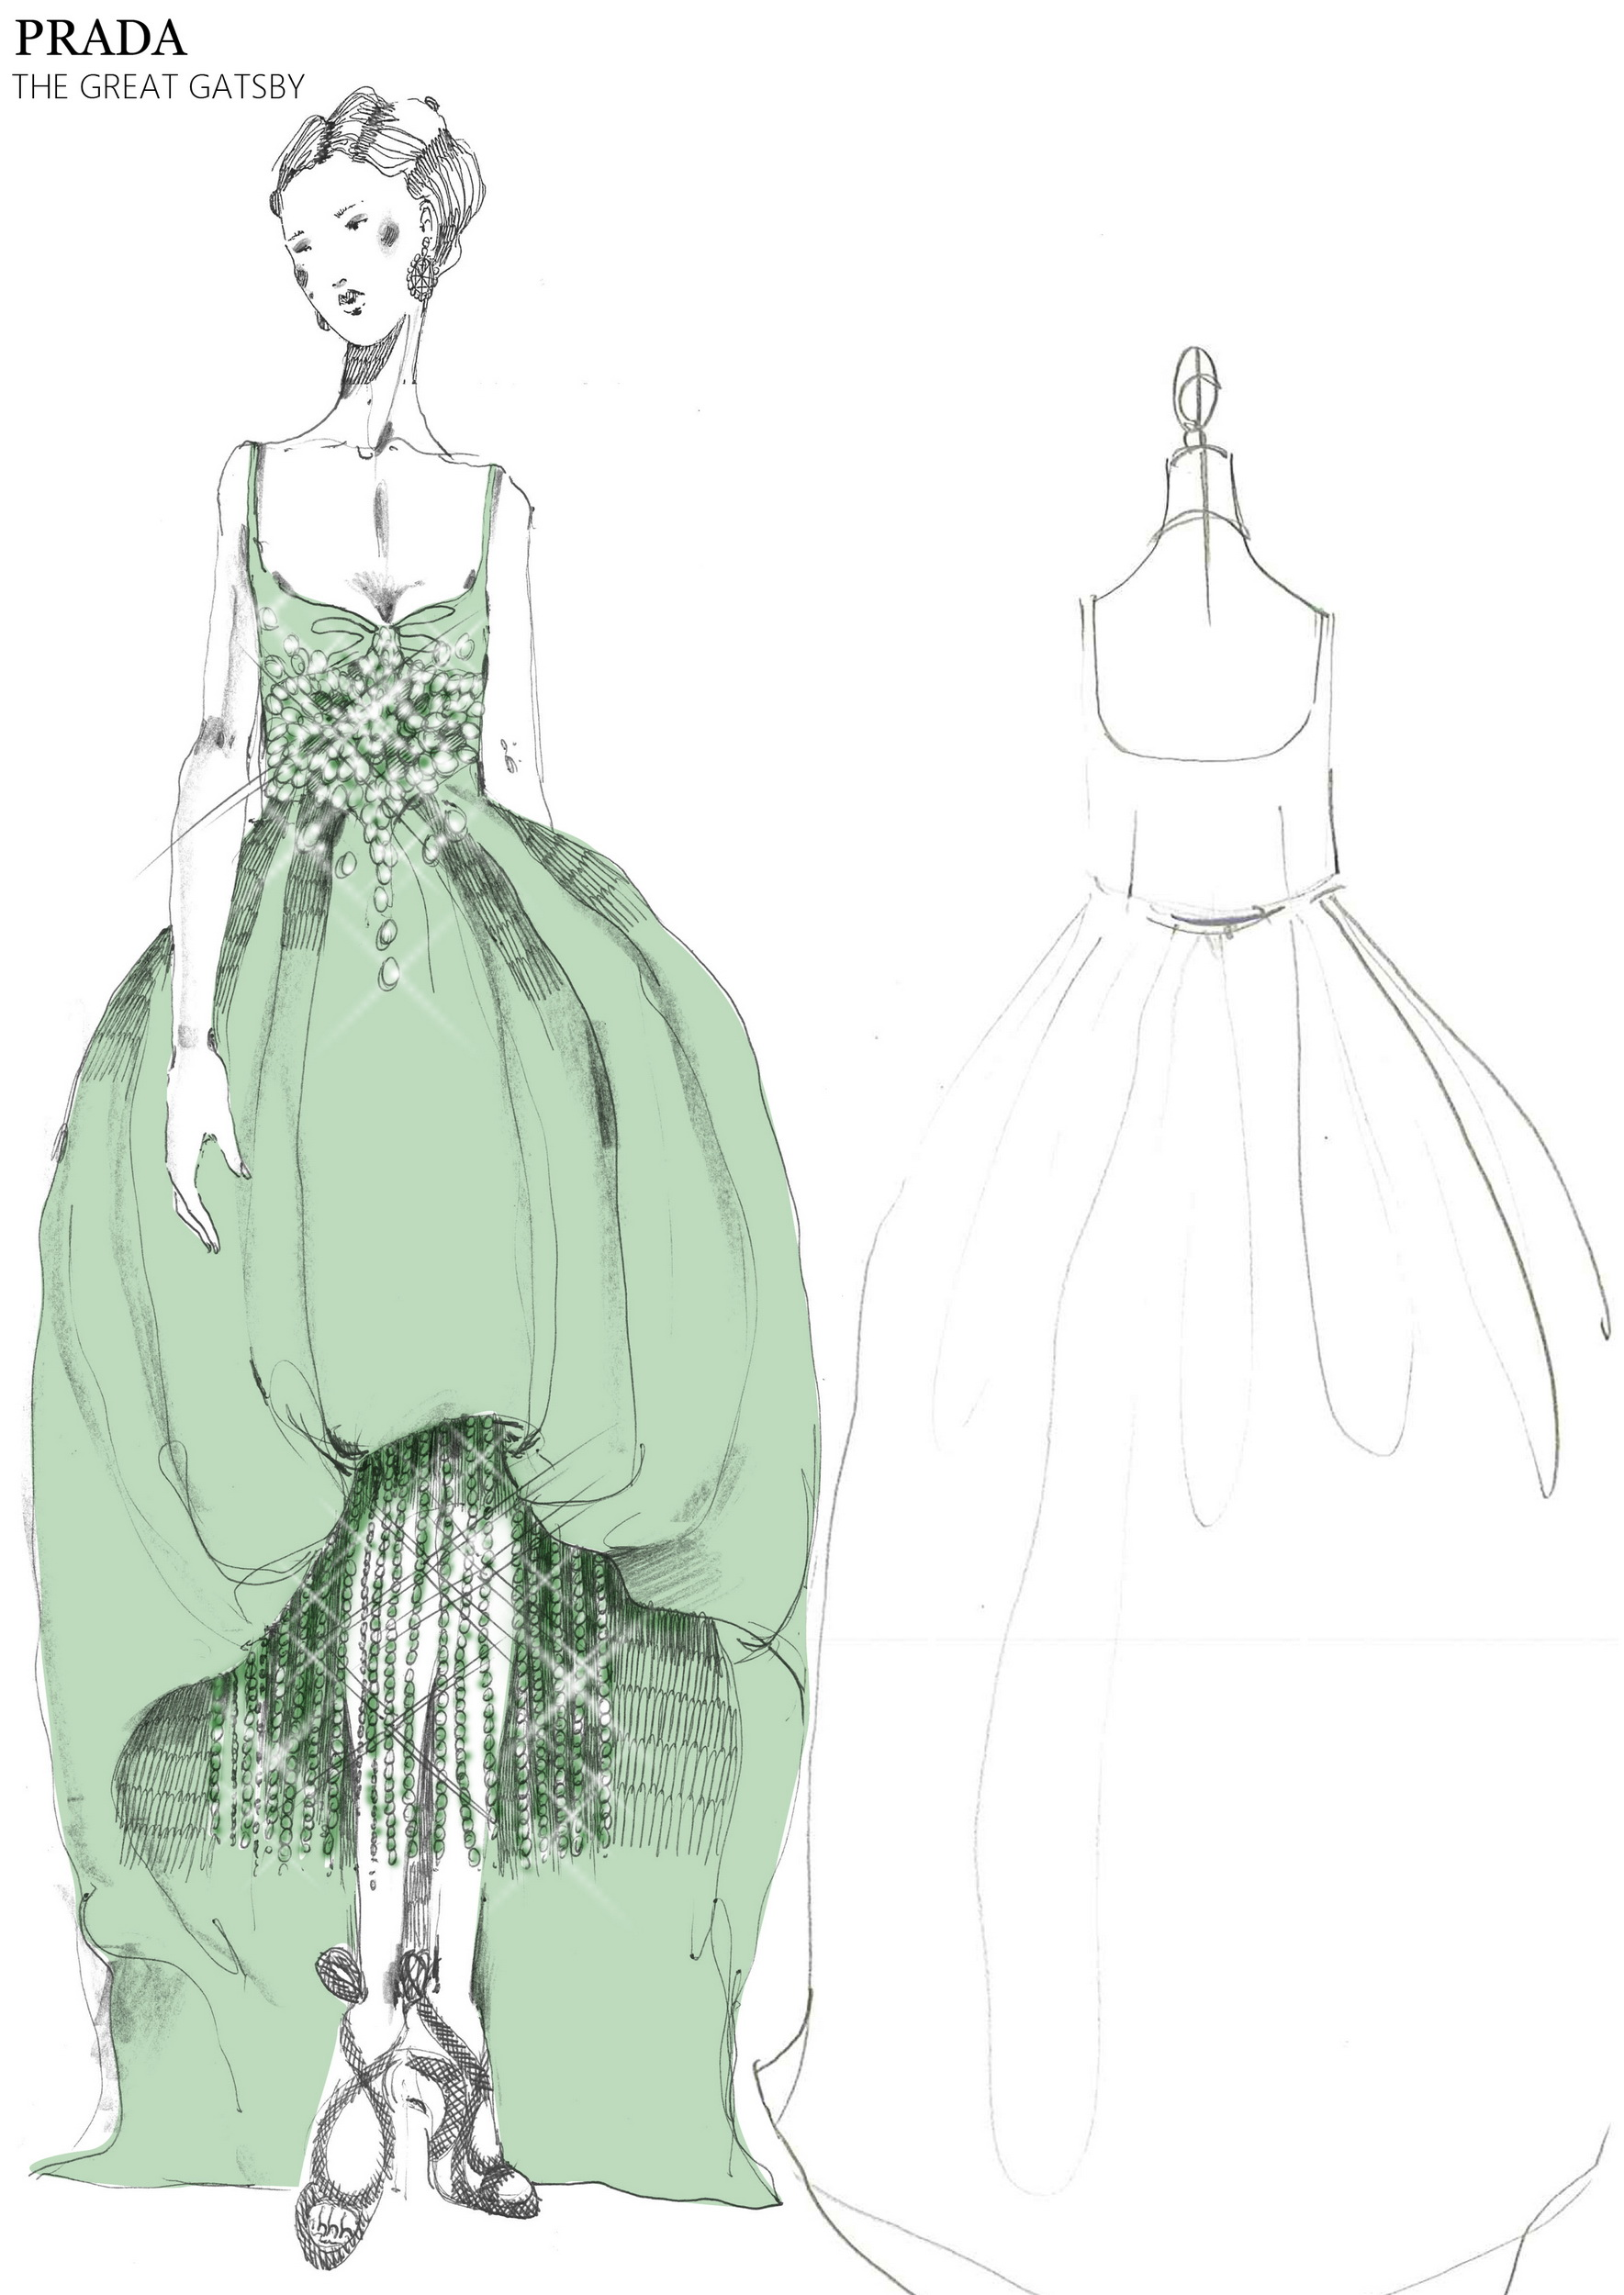 PRADA_THE GREAT GATSBY_20